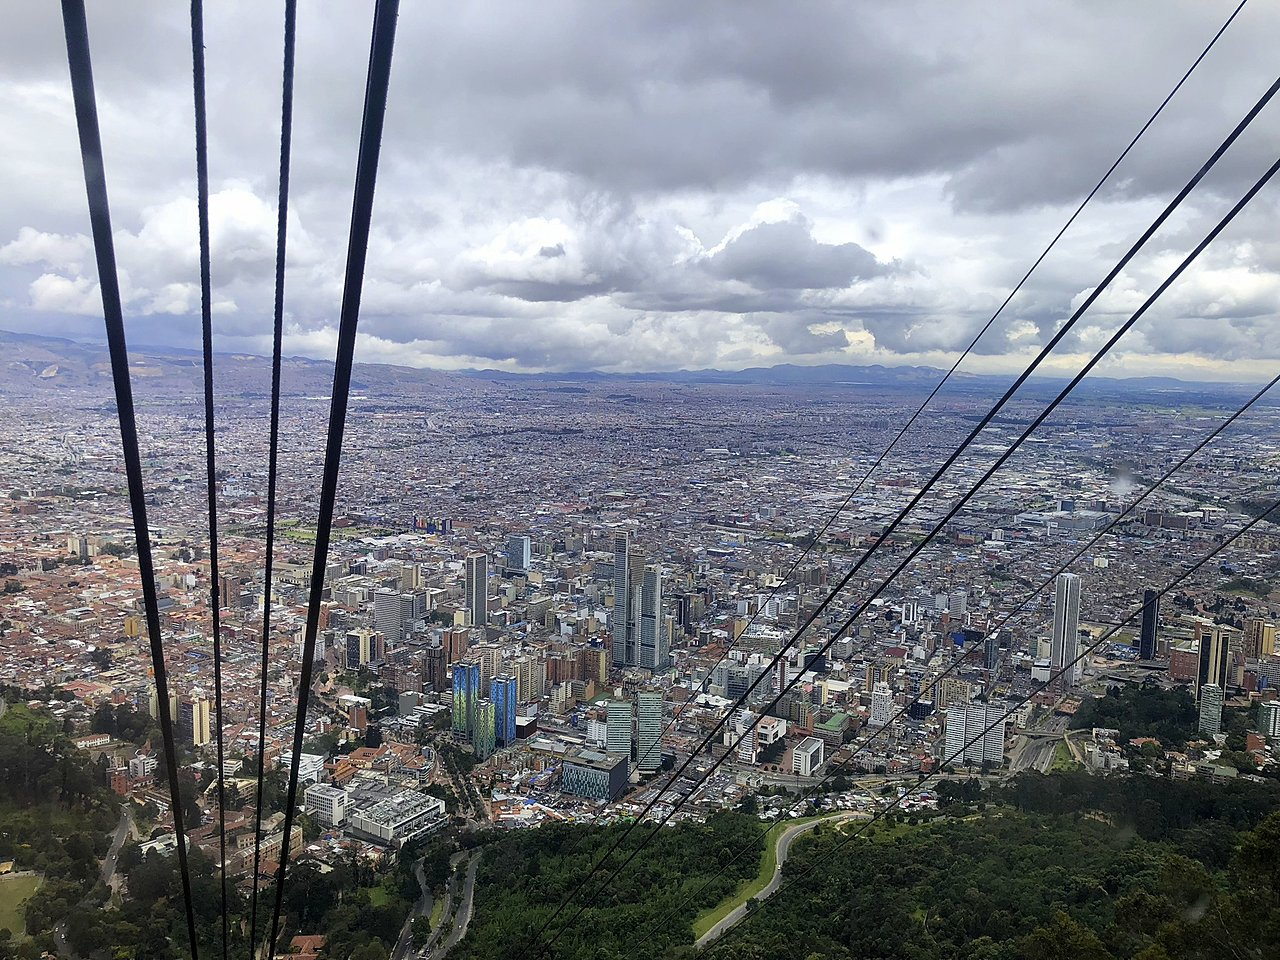 View and cable car in Monserrate